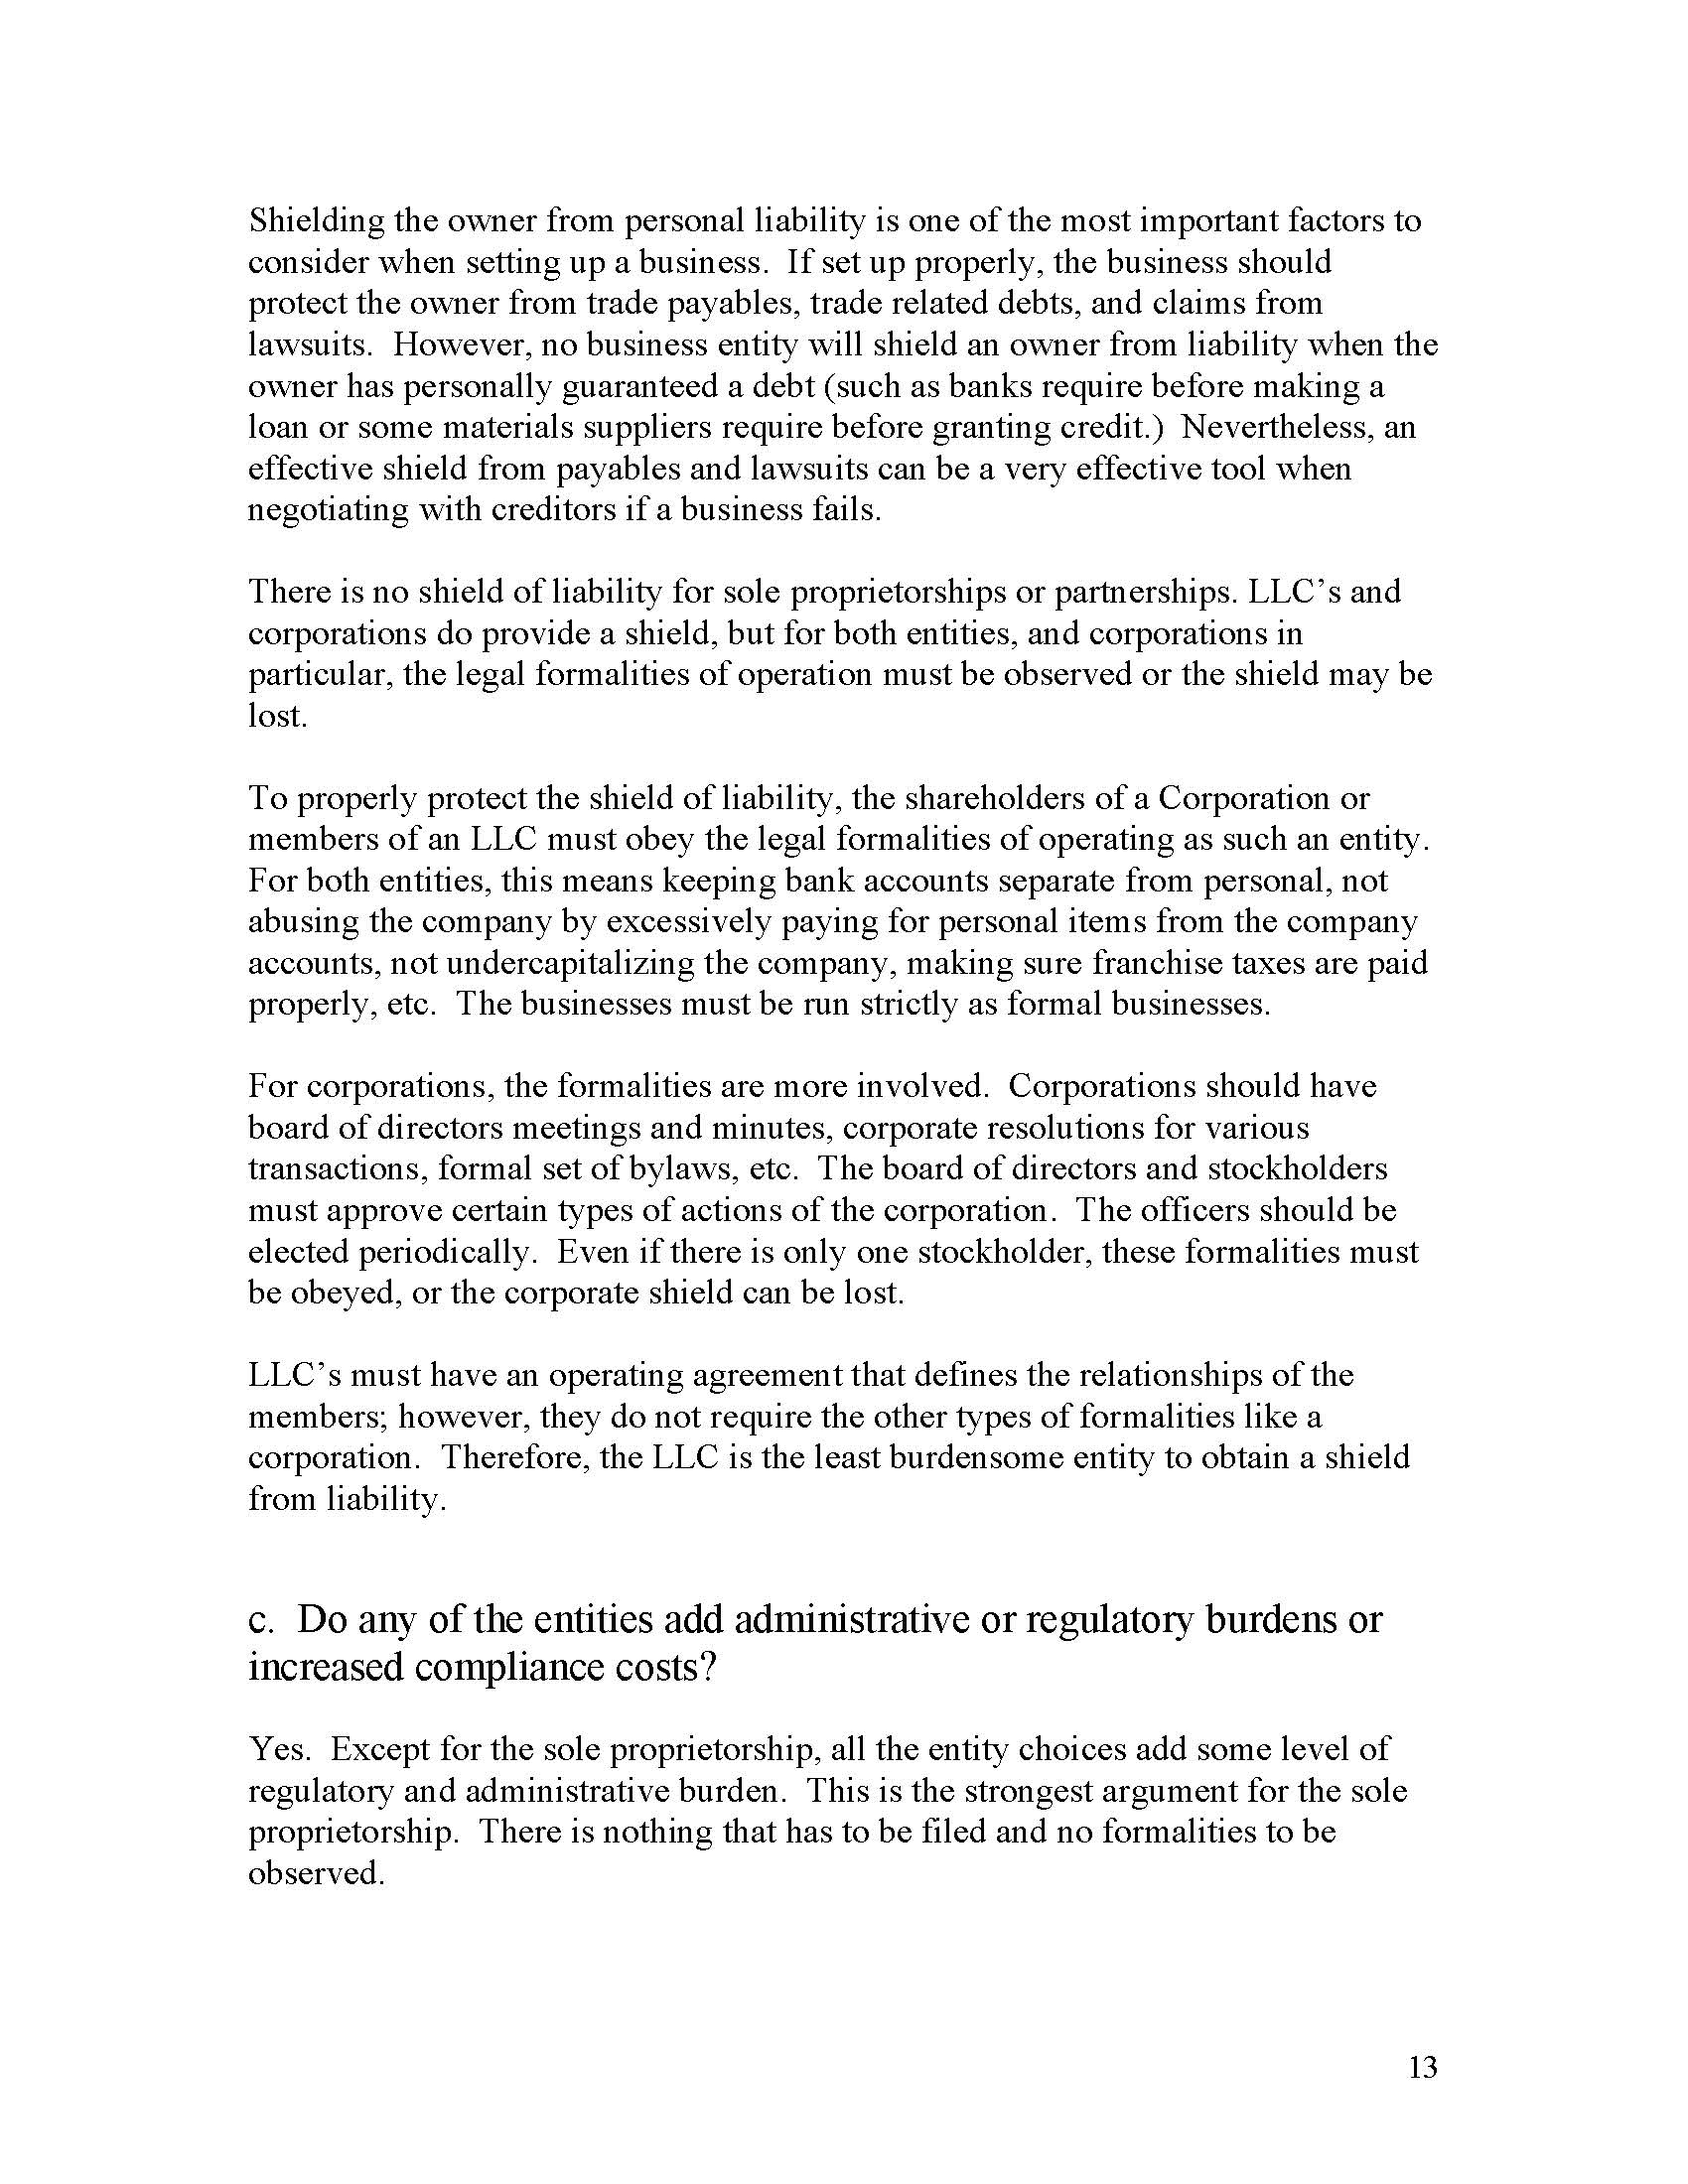 construction-business-structure-how-to-protect-your-equity_Page_13.jpg